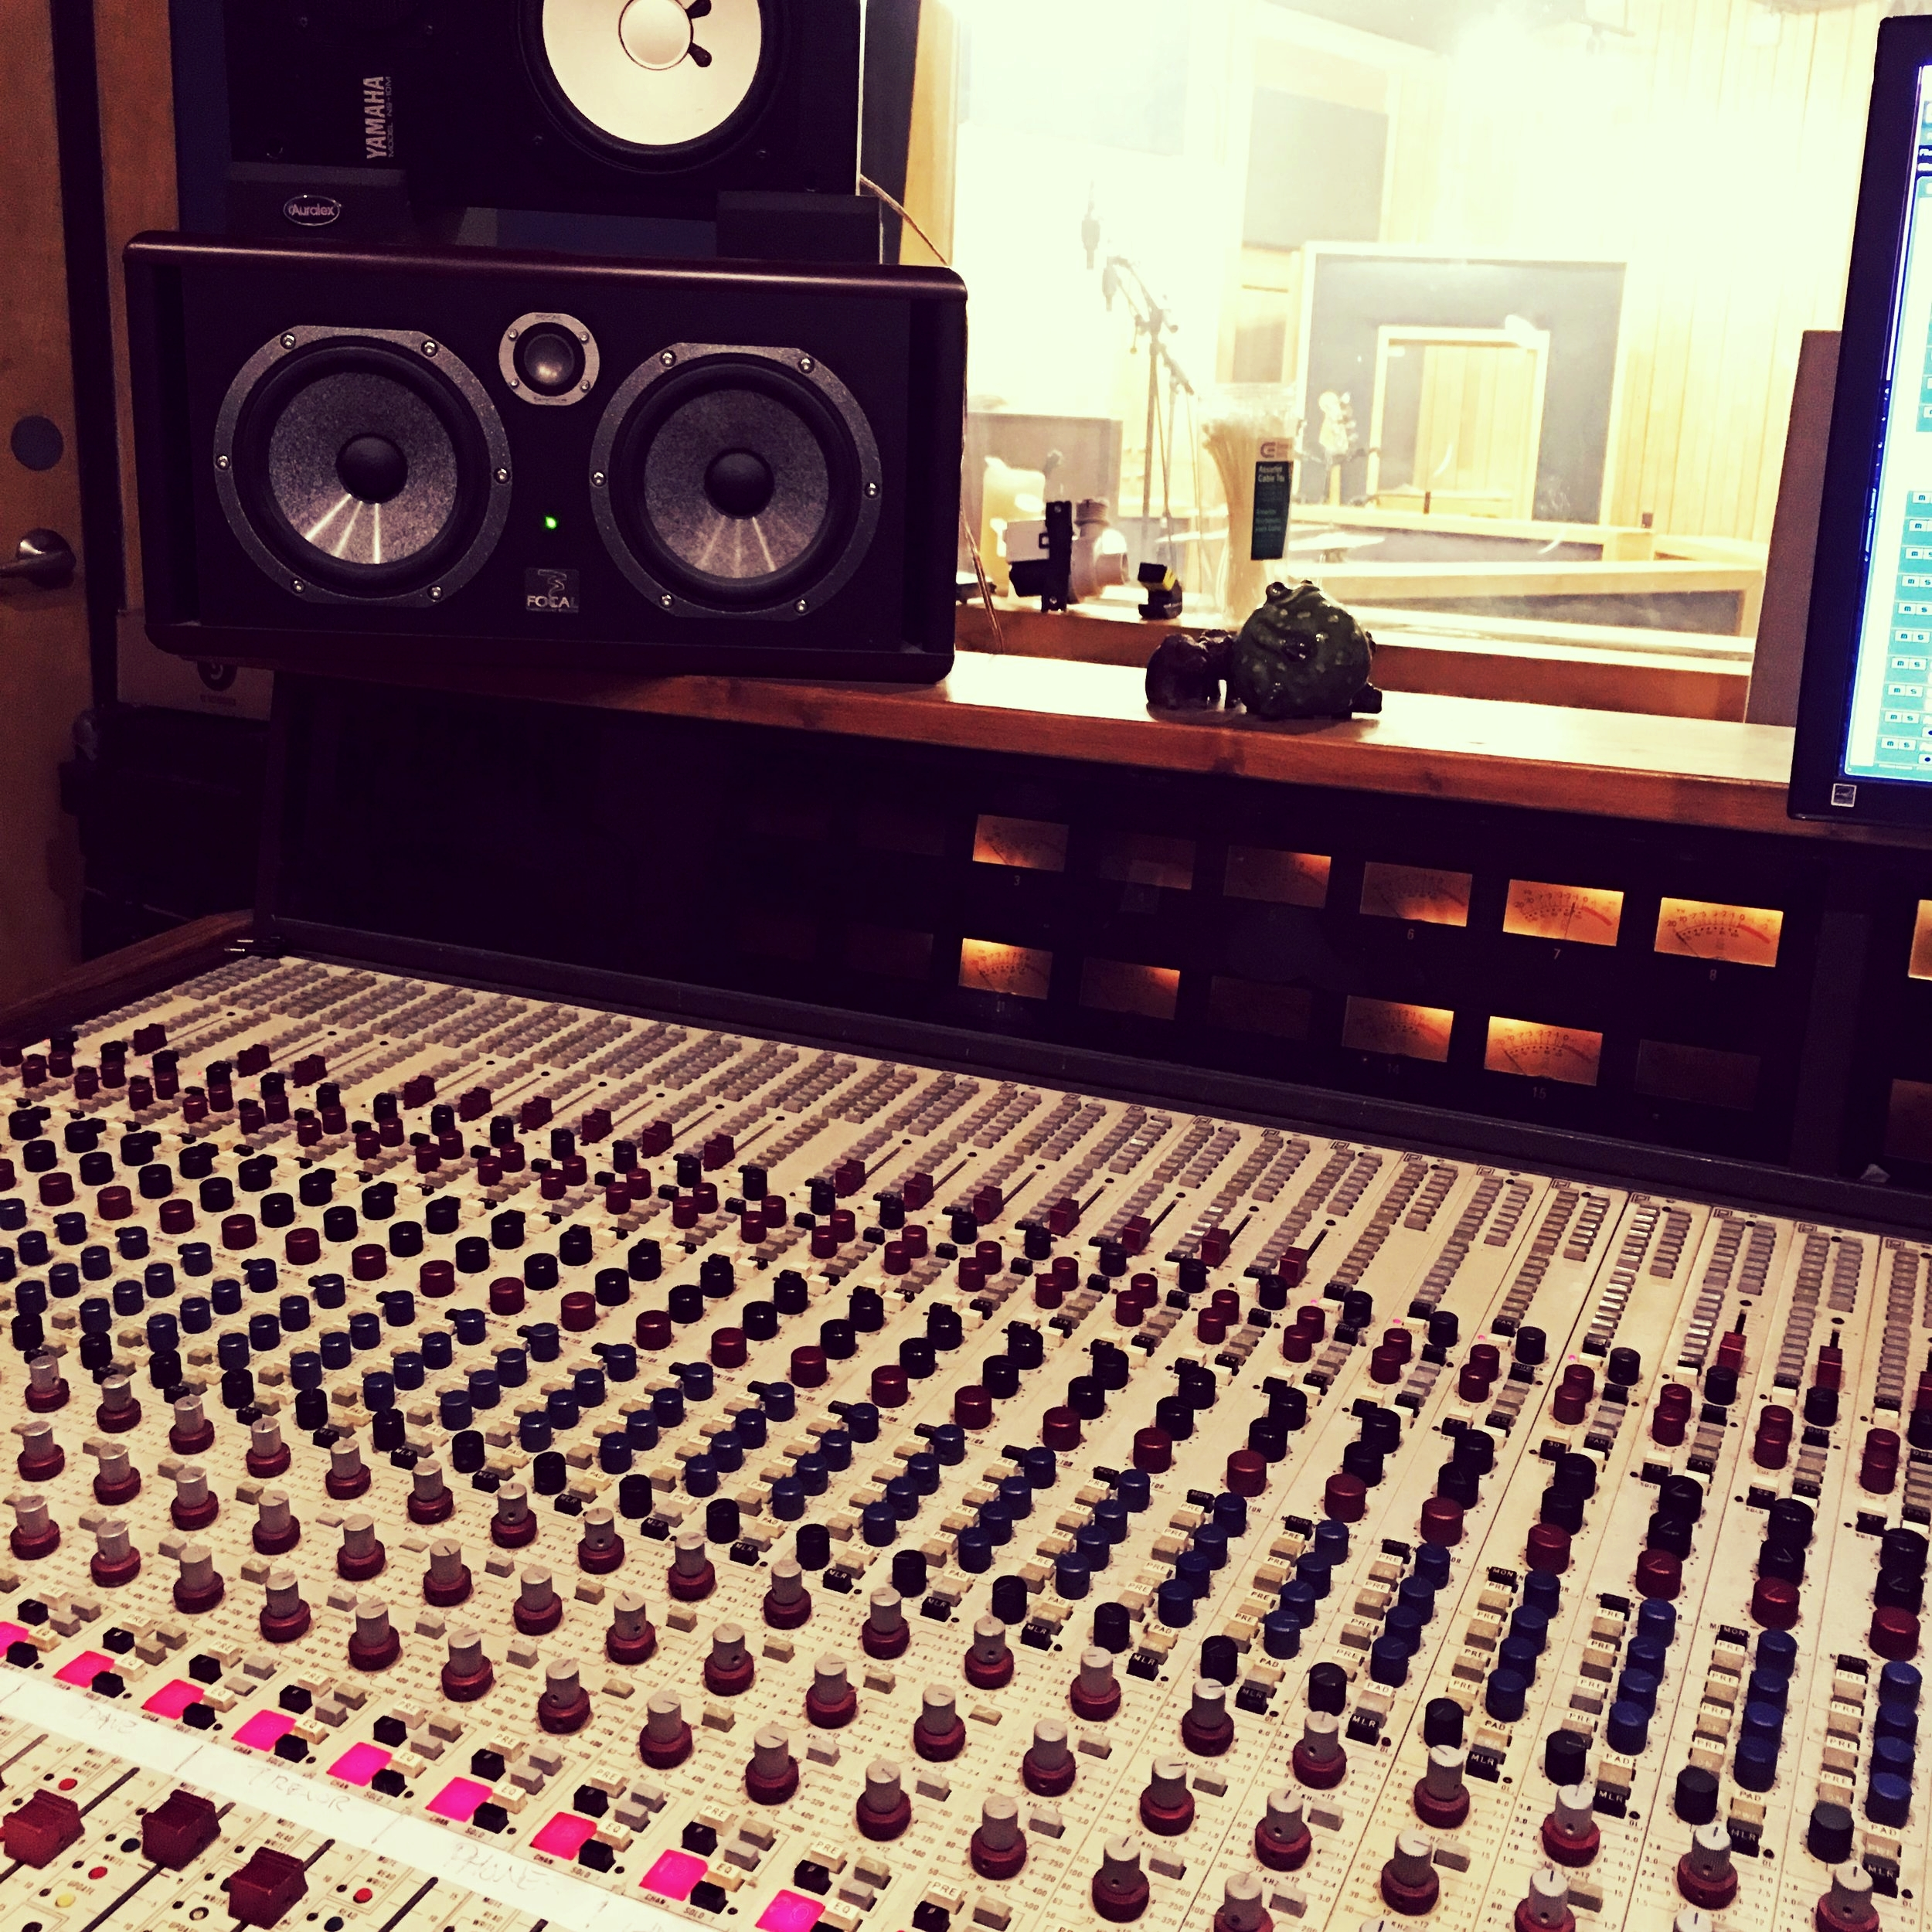 Estuary Recording - Estuary Recording Facility is my favorite place to work in Austin. The versatile space and premium gear list offers us the most options for the best-sounding tracks.